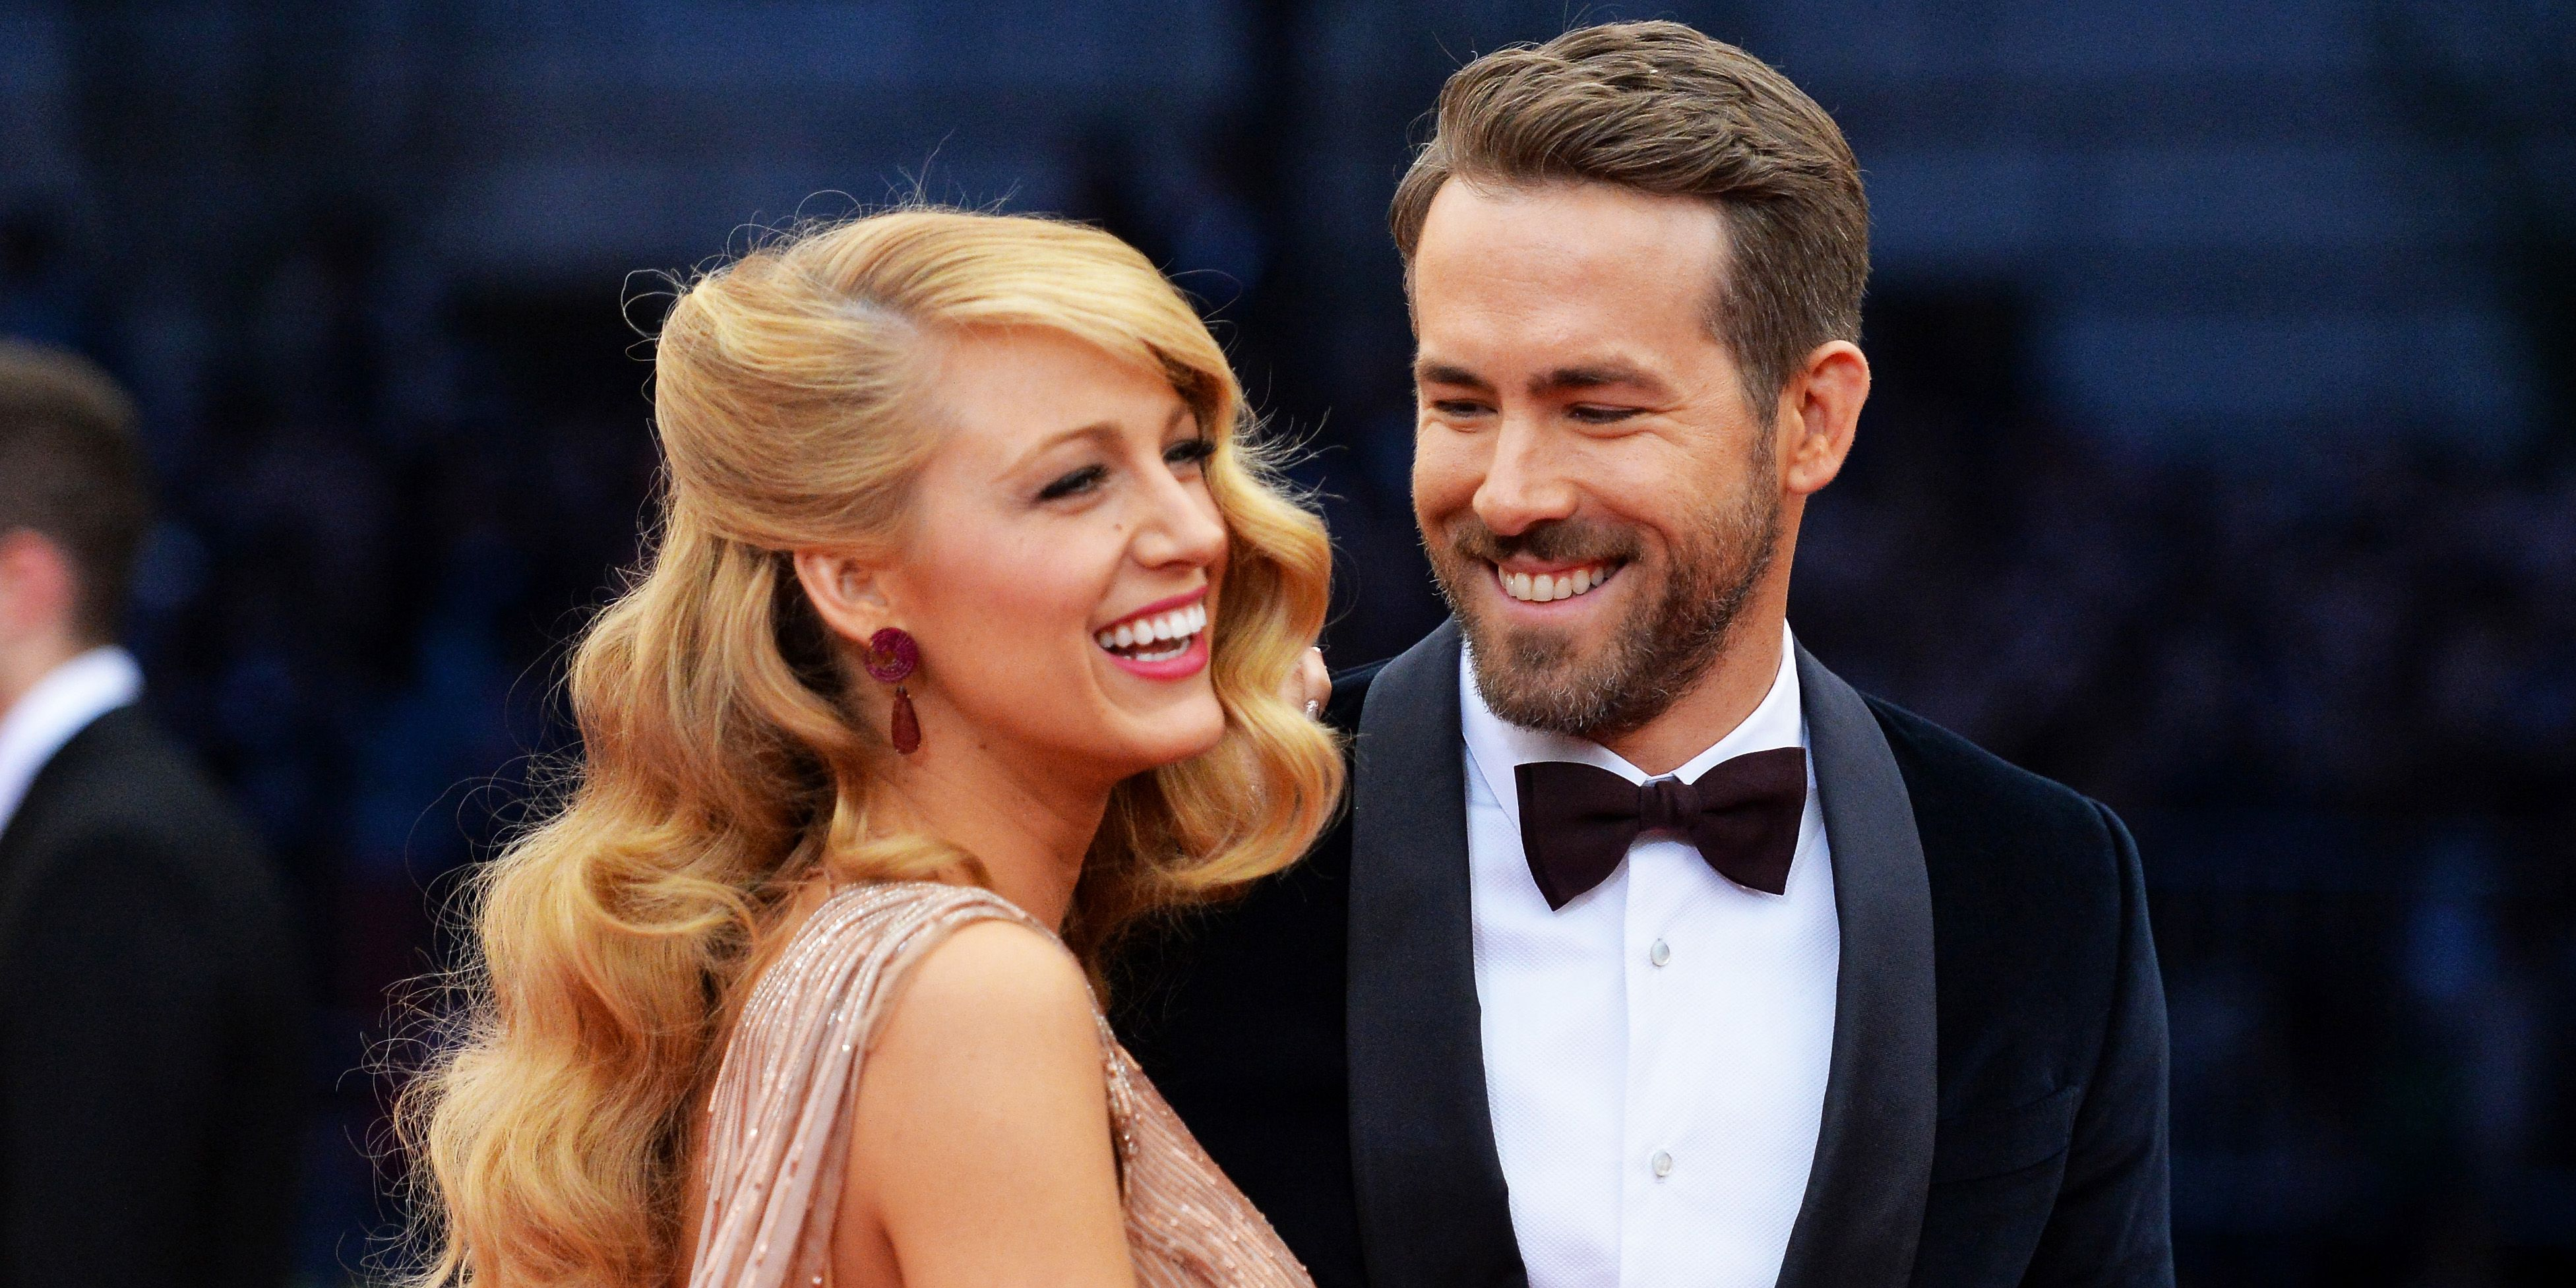 Ryan Reynolds trolls Blake Lively